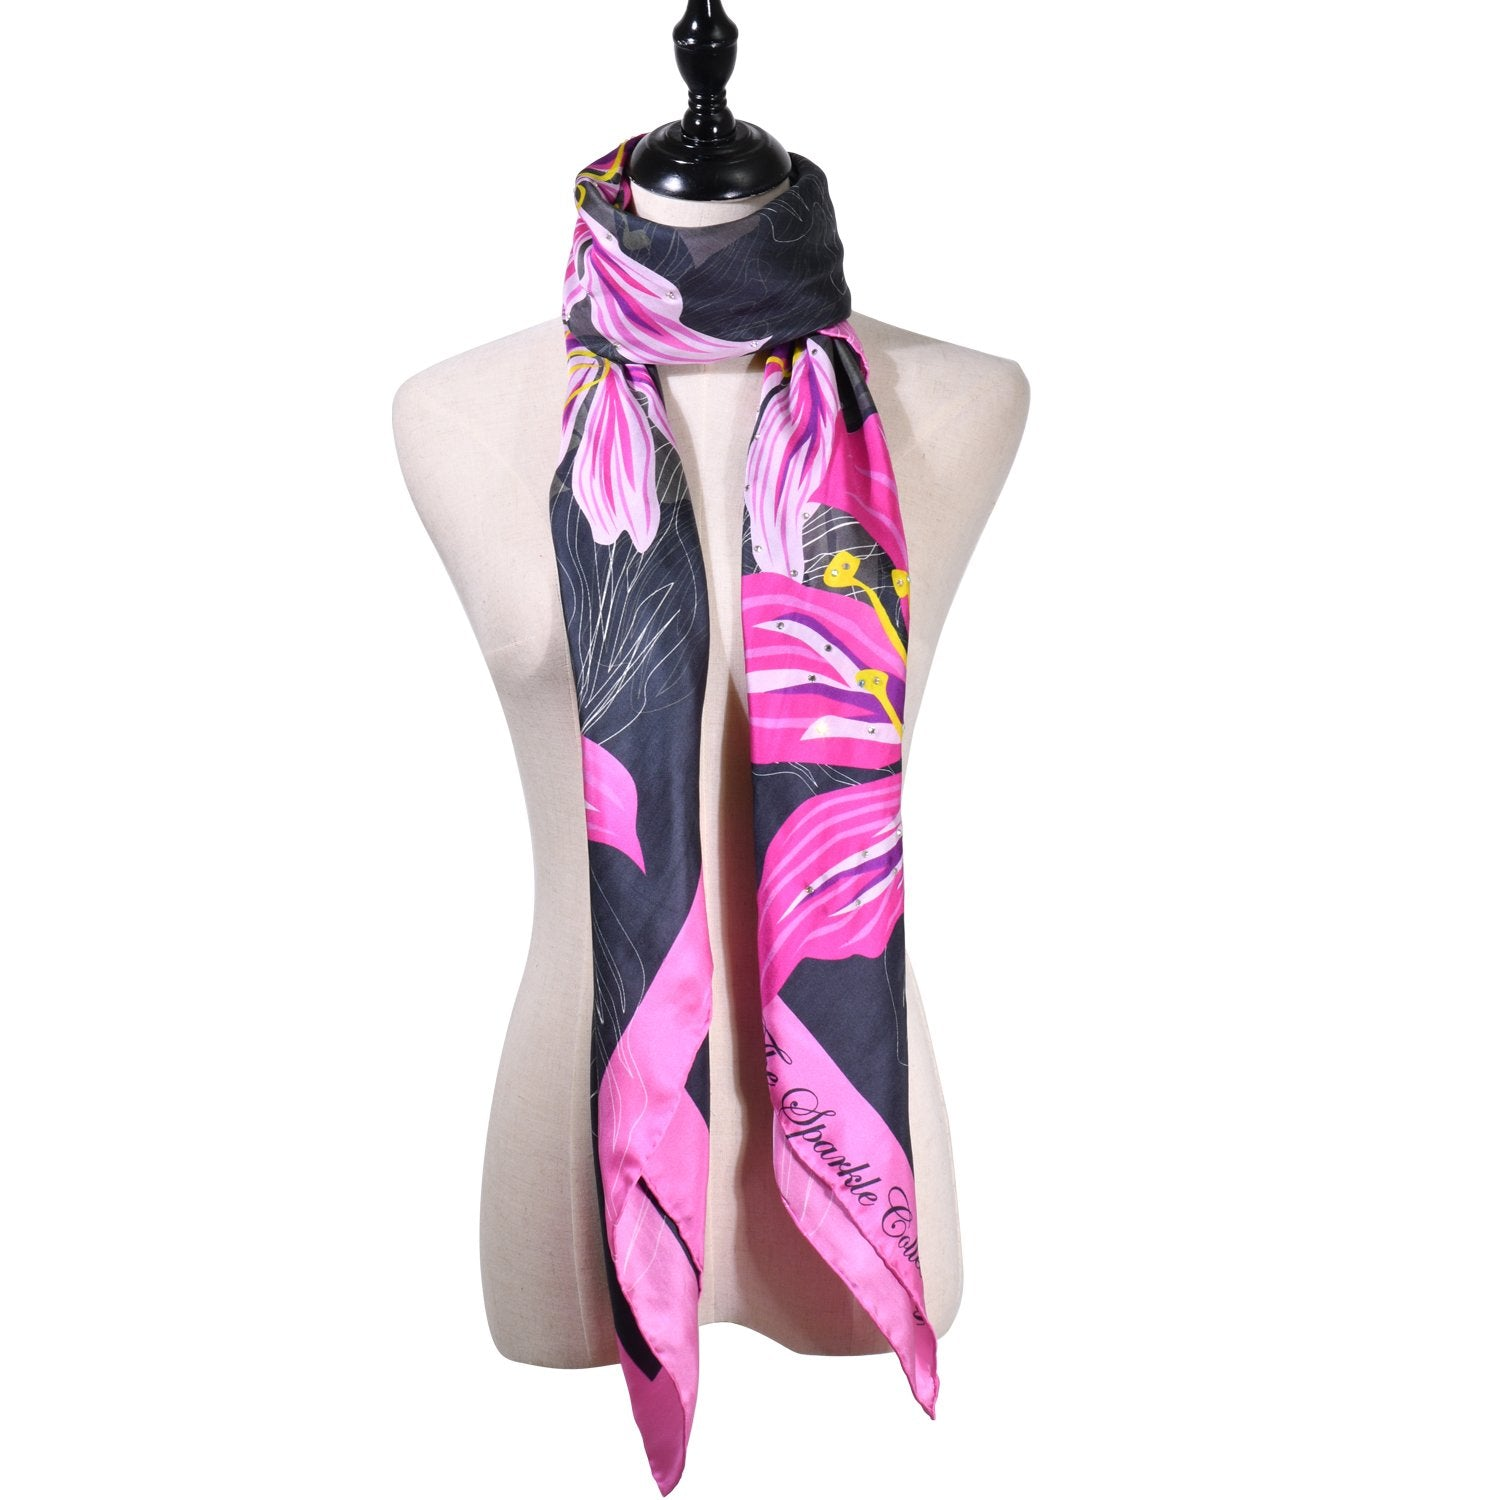 【BAUHINIA】 100% Silk Scarf with Crystals - THE SPARKLE COLLECTION by GERMAN POOL